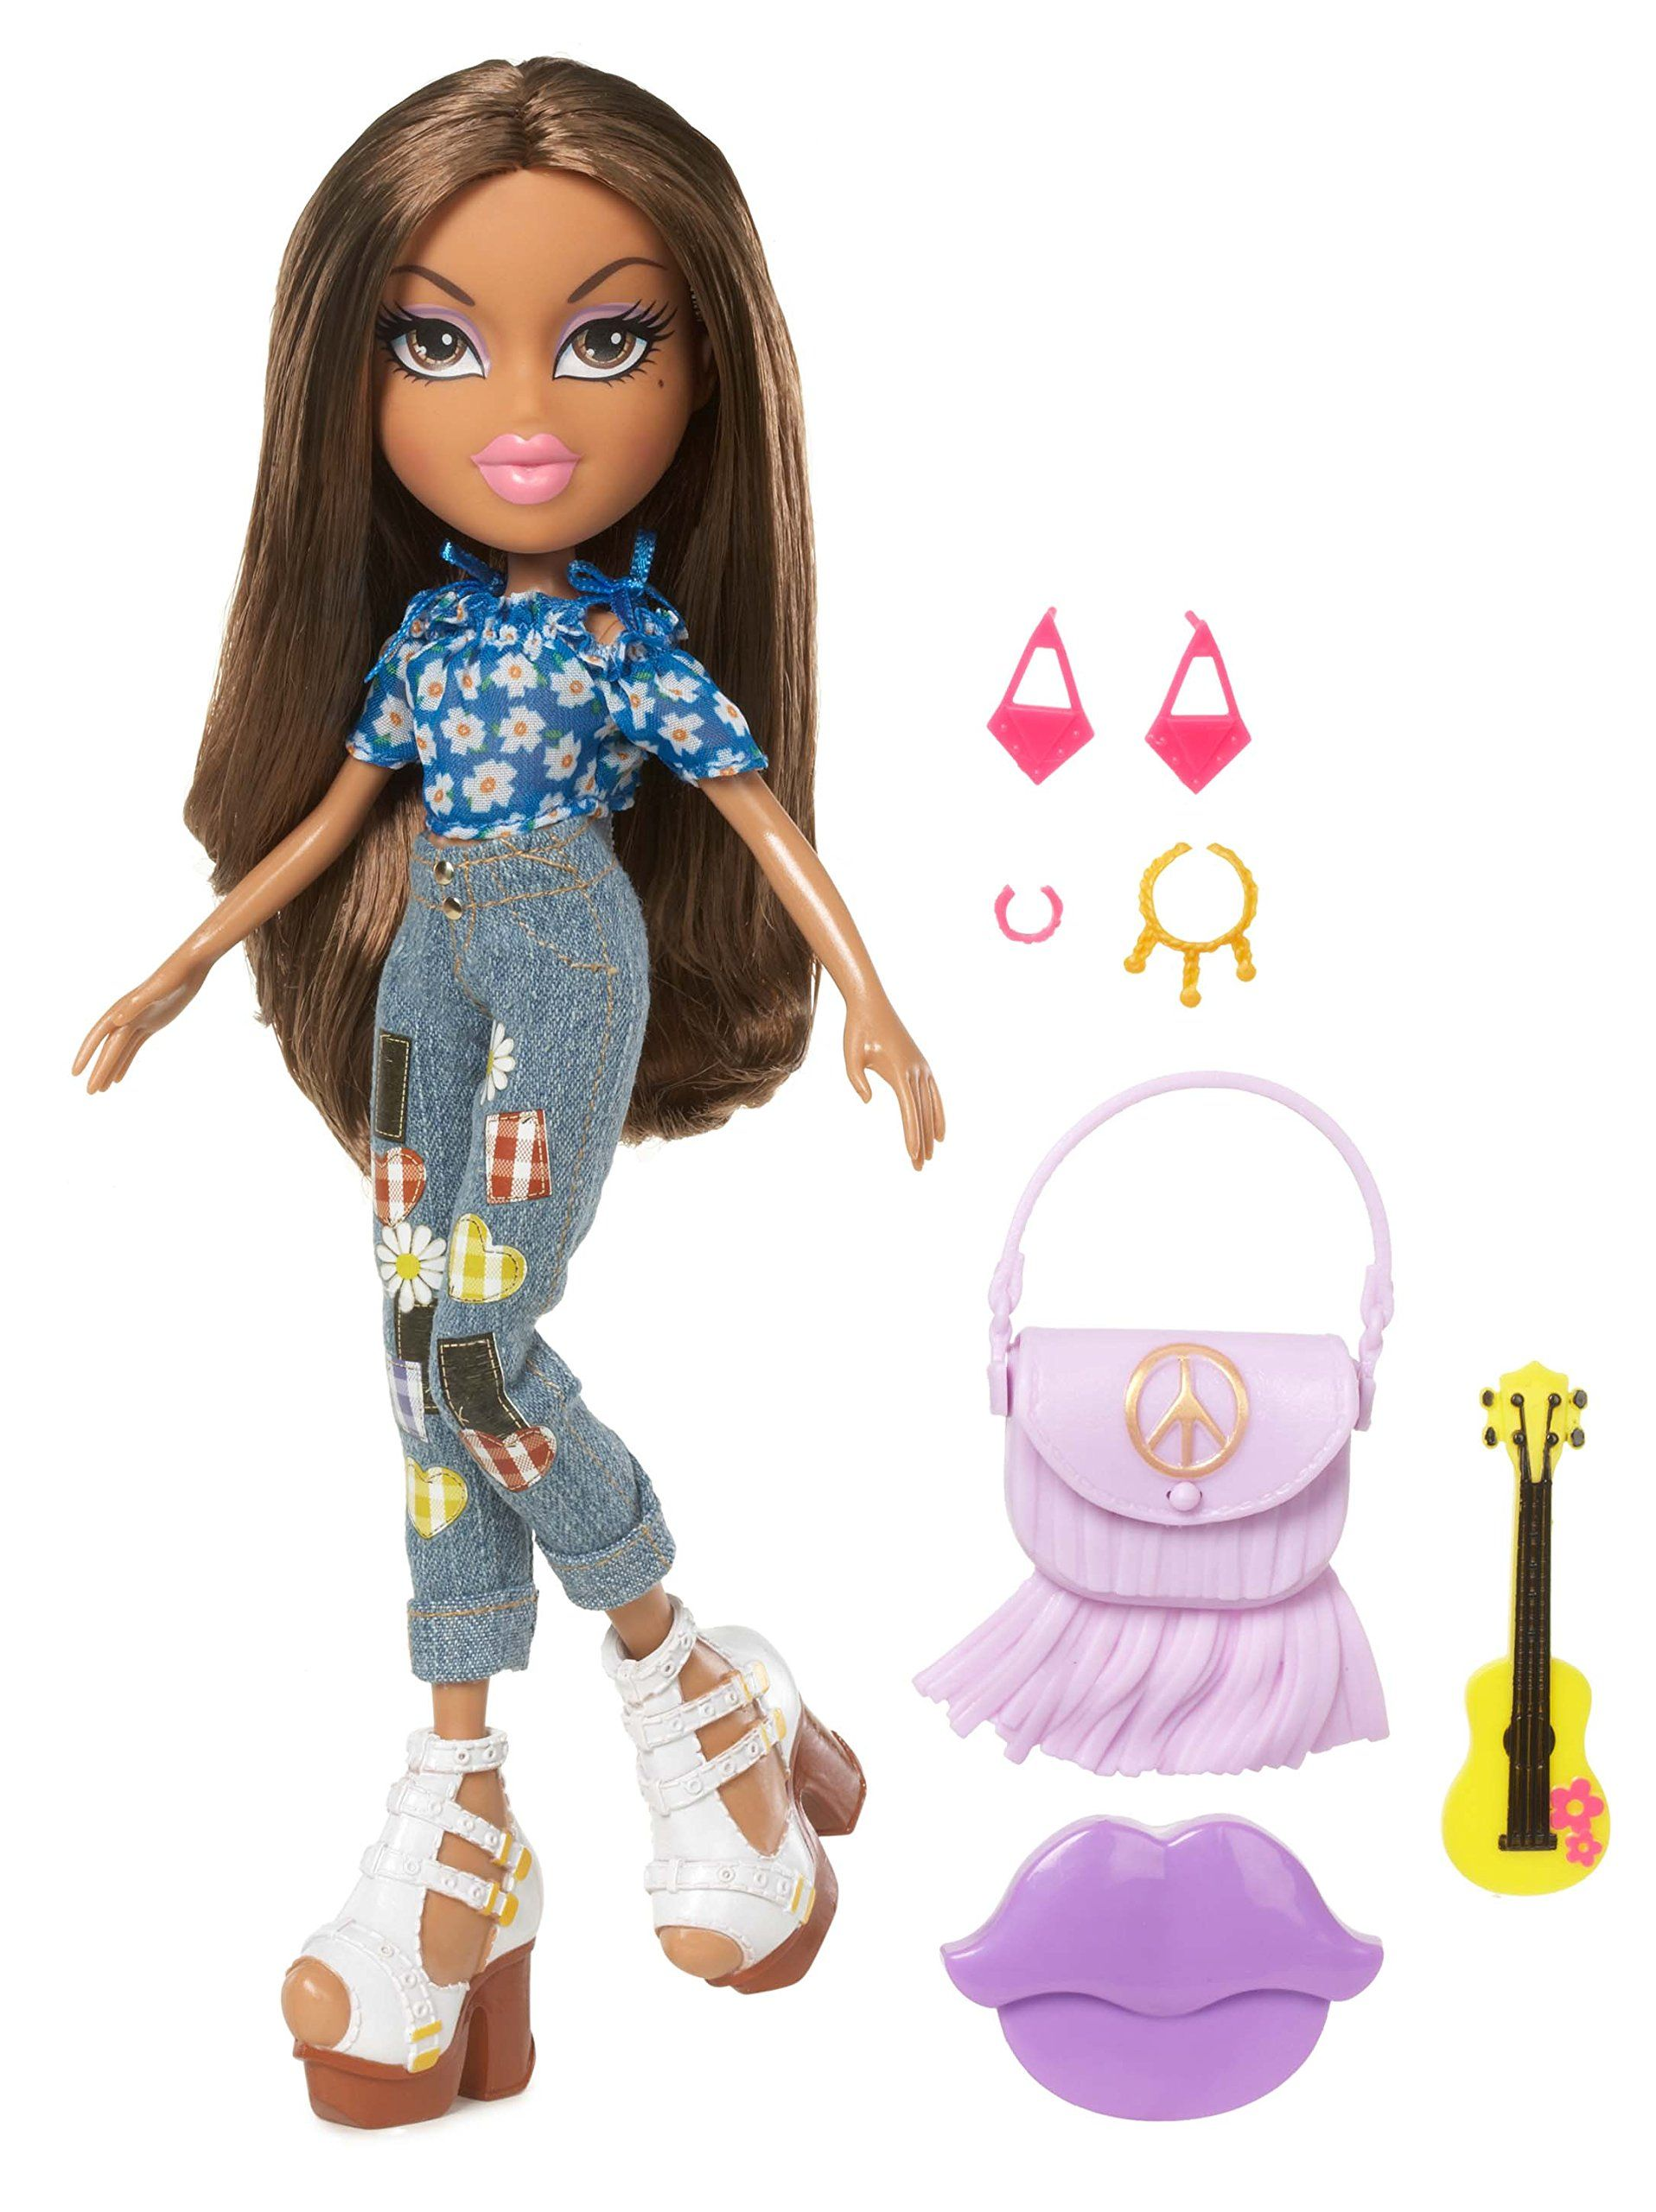 Bratz fashion pixiez breanna 26